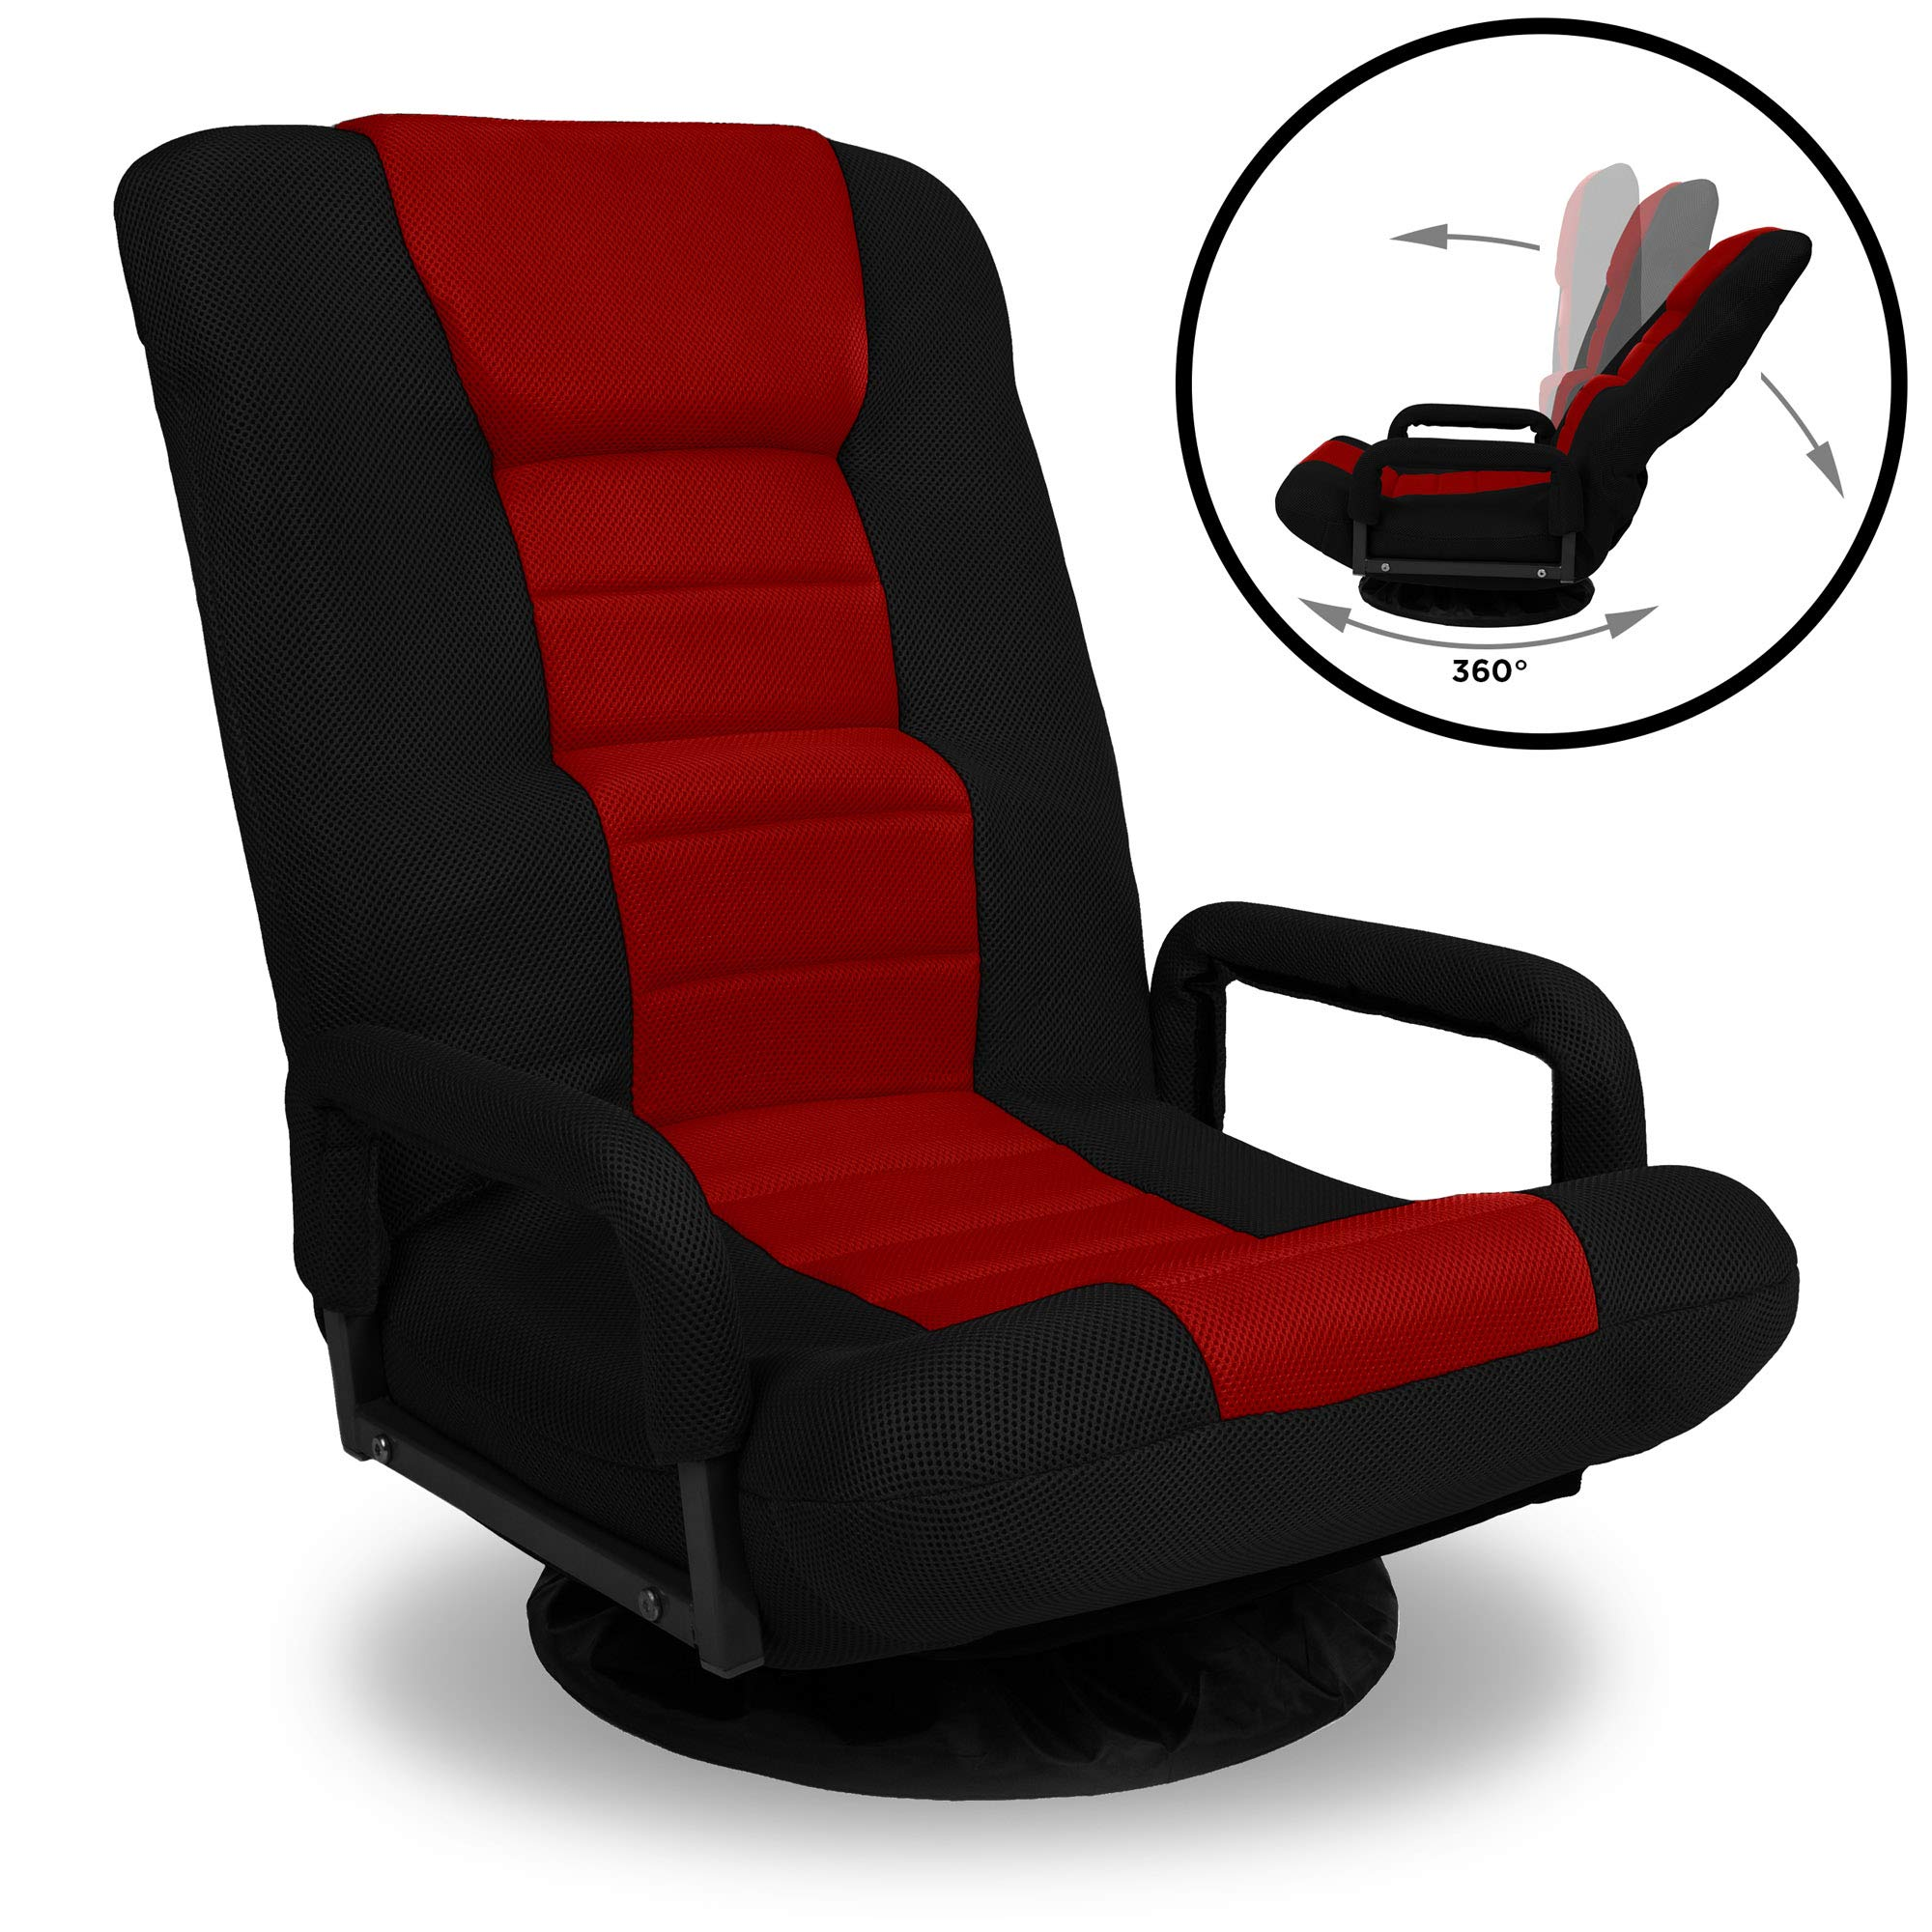 Best Choice Products Multipurpose 360-Degree Swivel Gaming Floor Chair w/Armrest Handles, Foldable Adjustable Backrest - Red/Black by Best Choice Products